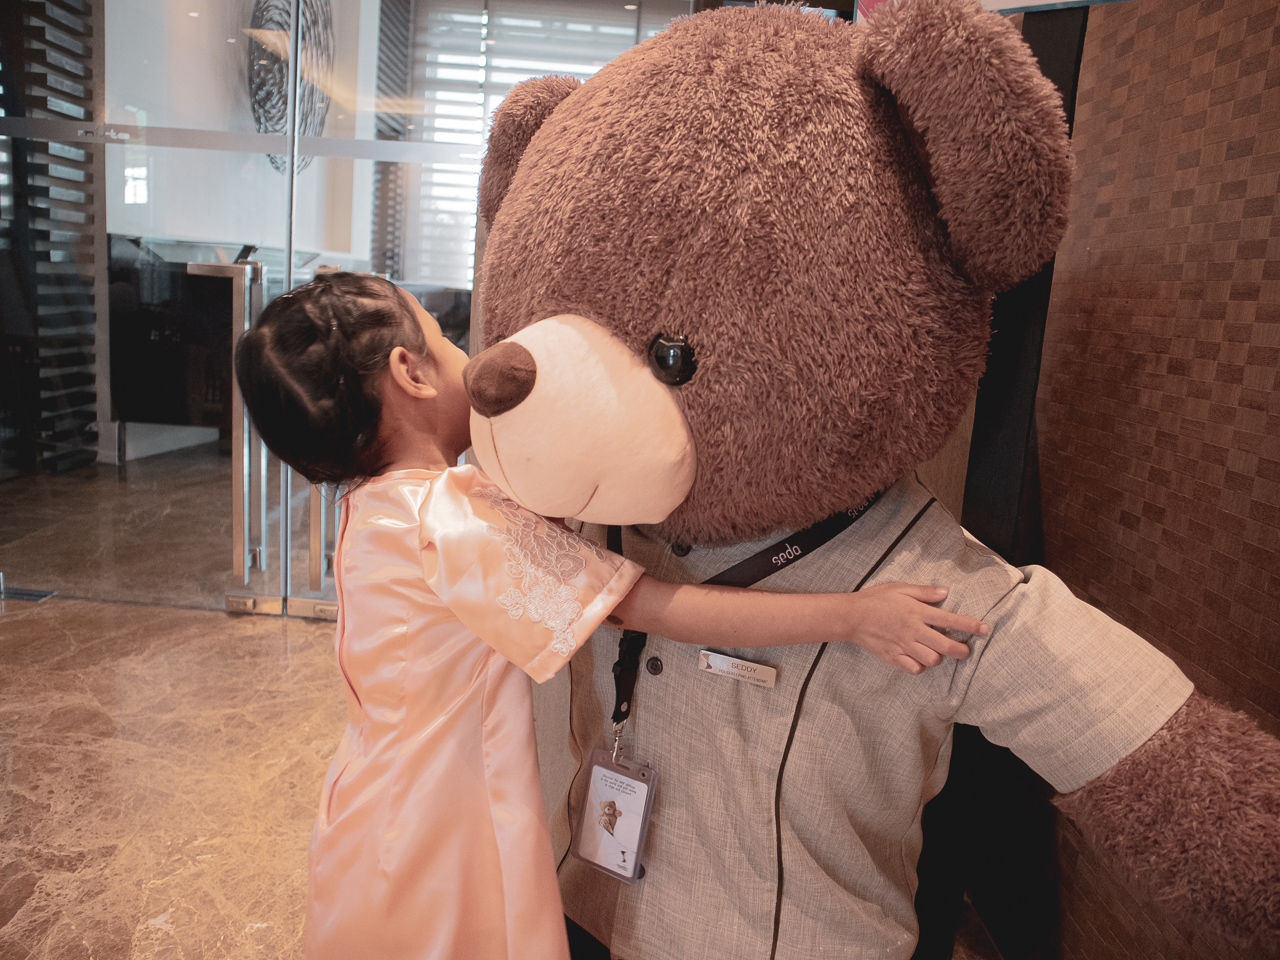 hug-for-seda-hotel-bear